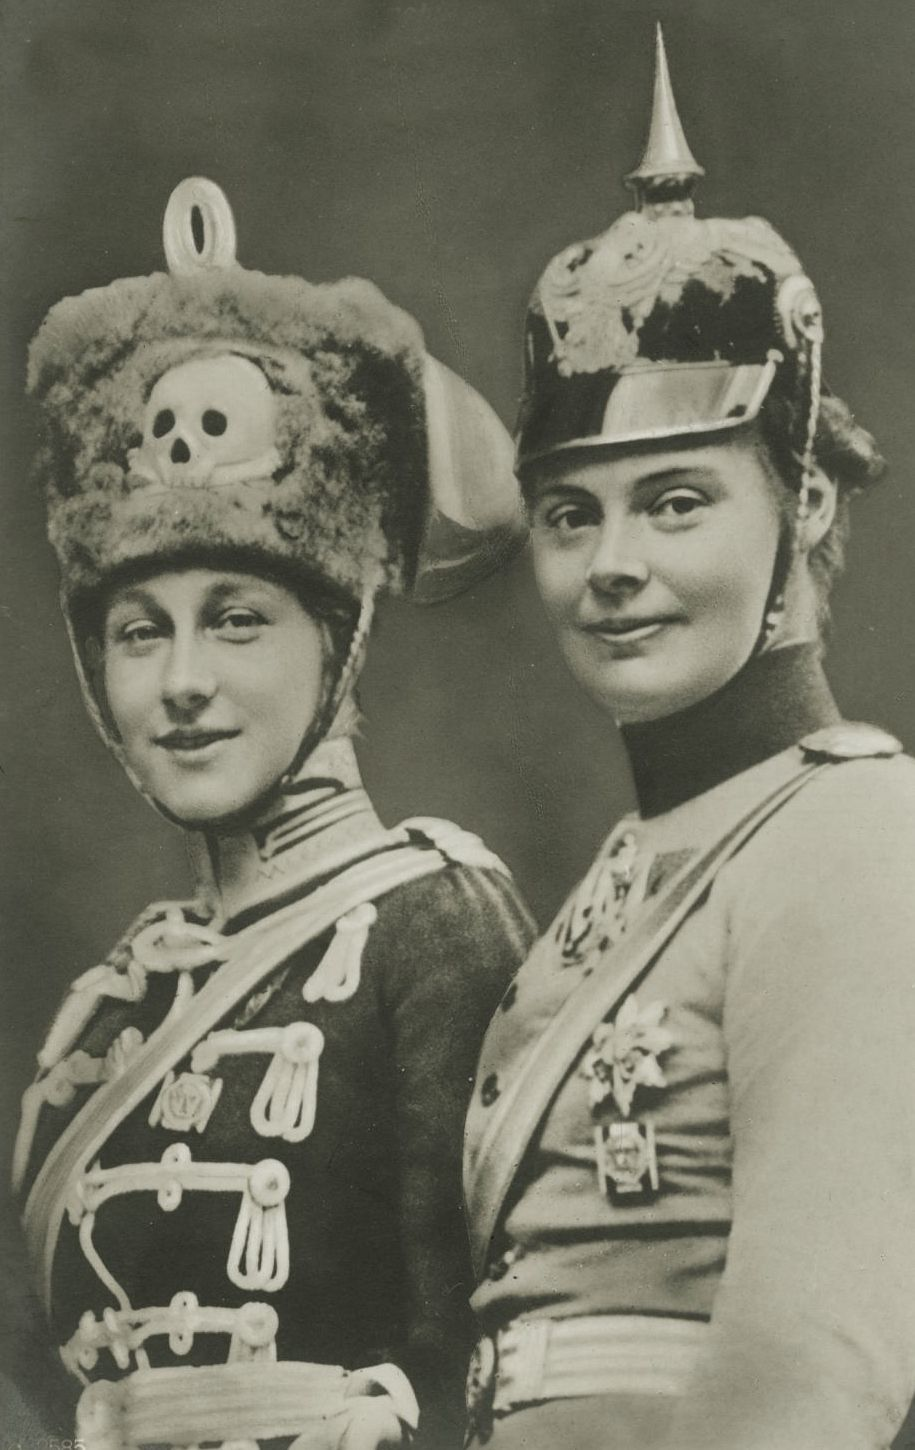 In 1910, Prussian princess Victoria Louise was appointed head the